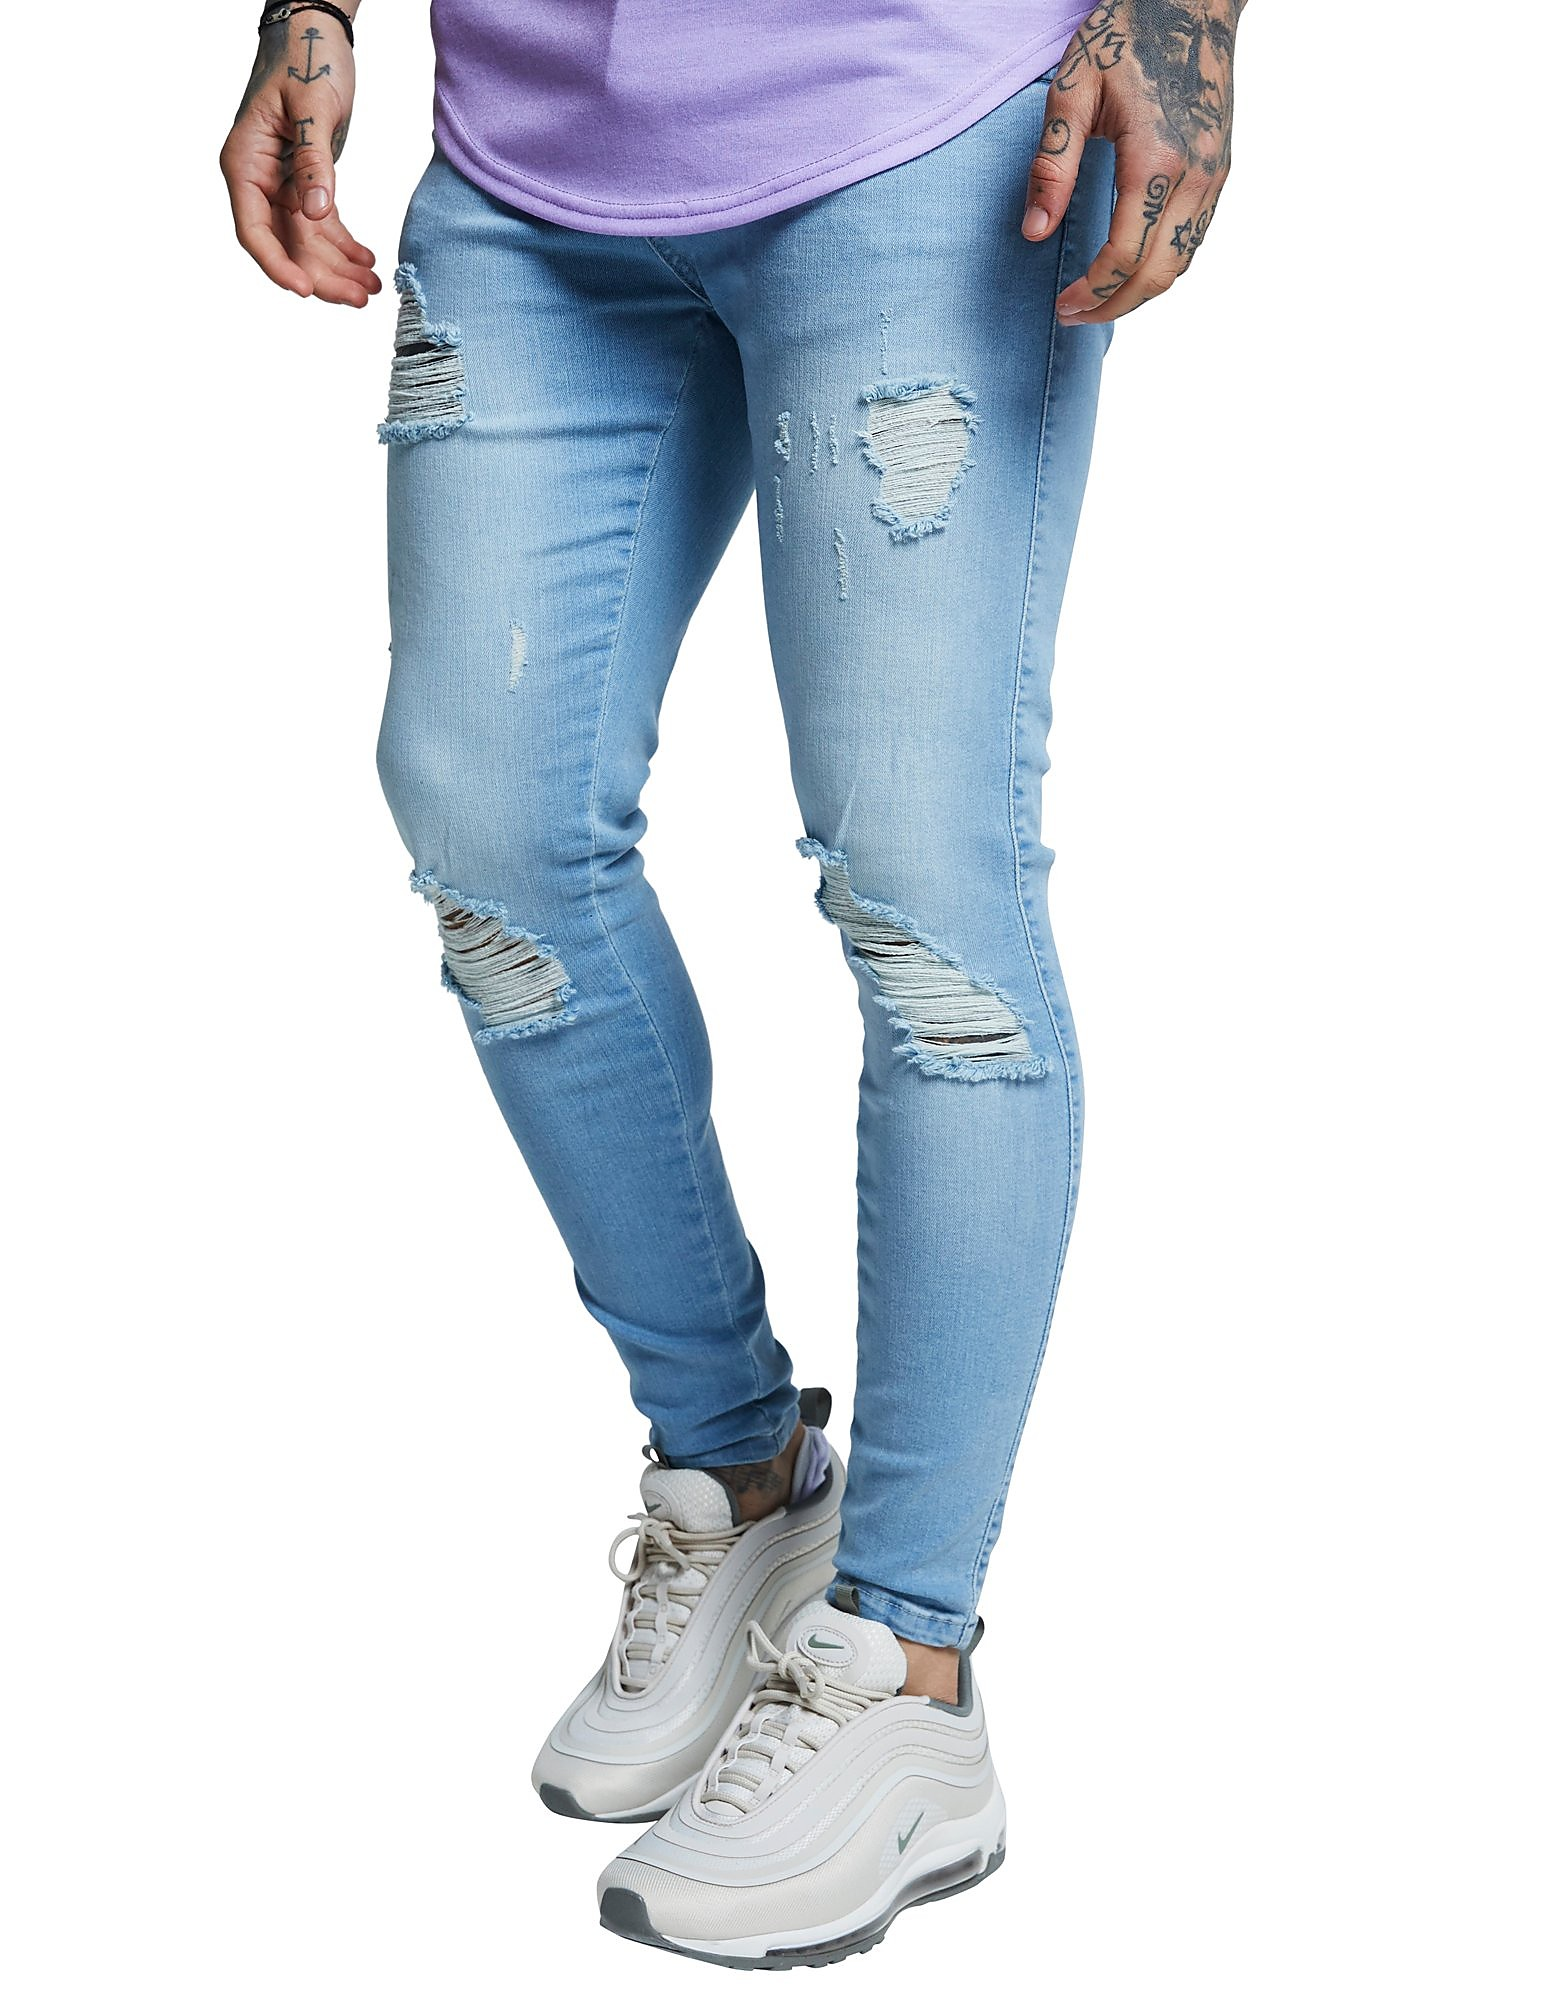 SikSilk Distressed Jeans - Light Blue - Heren